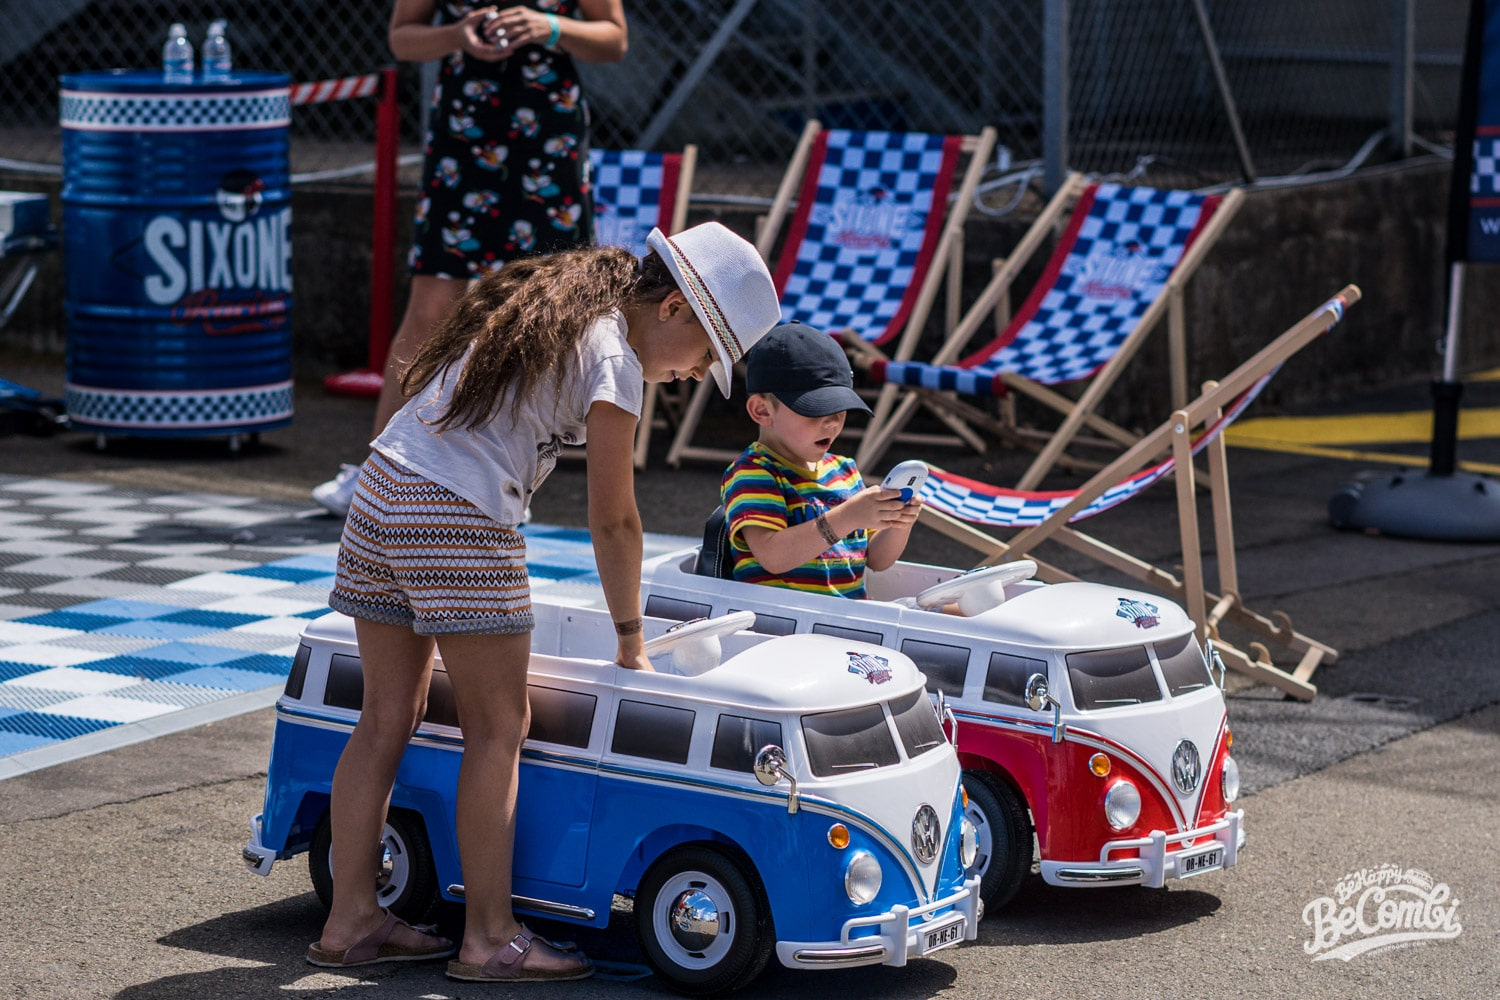 SixOne Racing - Super VW Fest - BeCombi - Juillet 2018